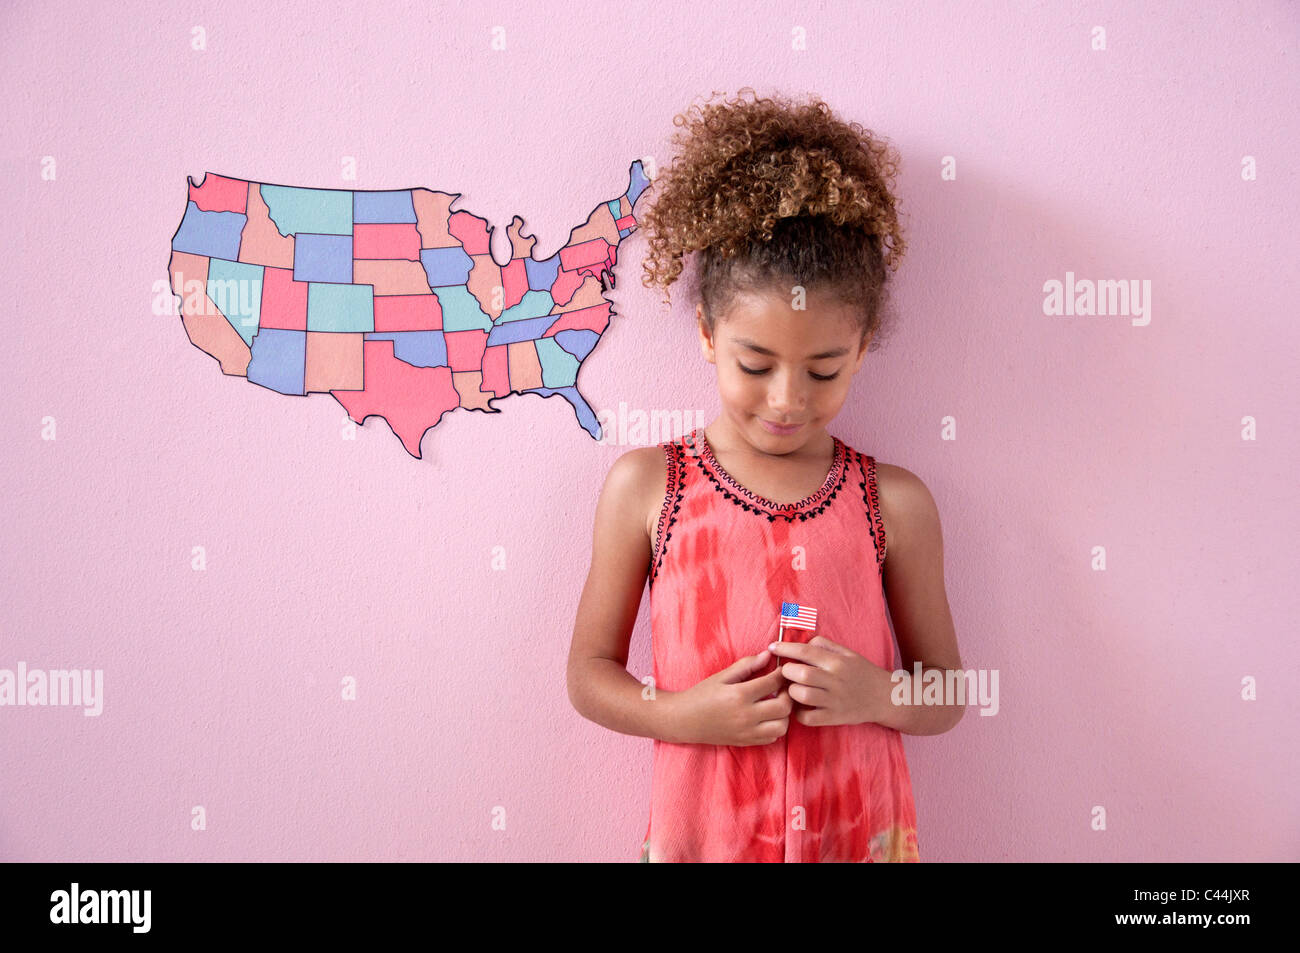 young girl in a pink room with an American map - Stock Image